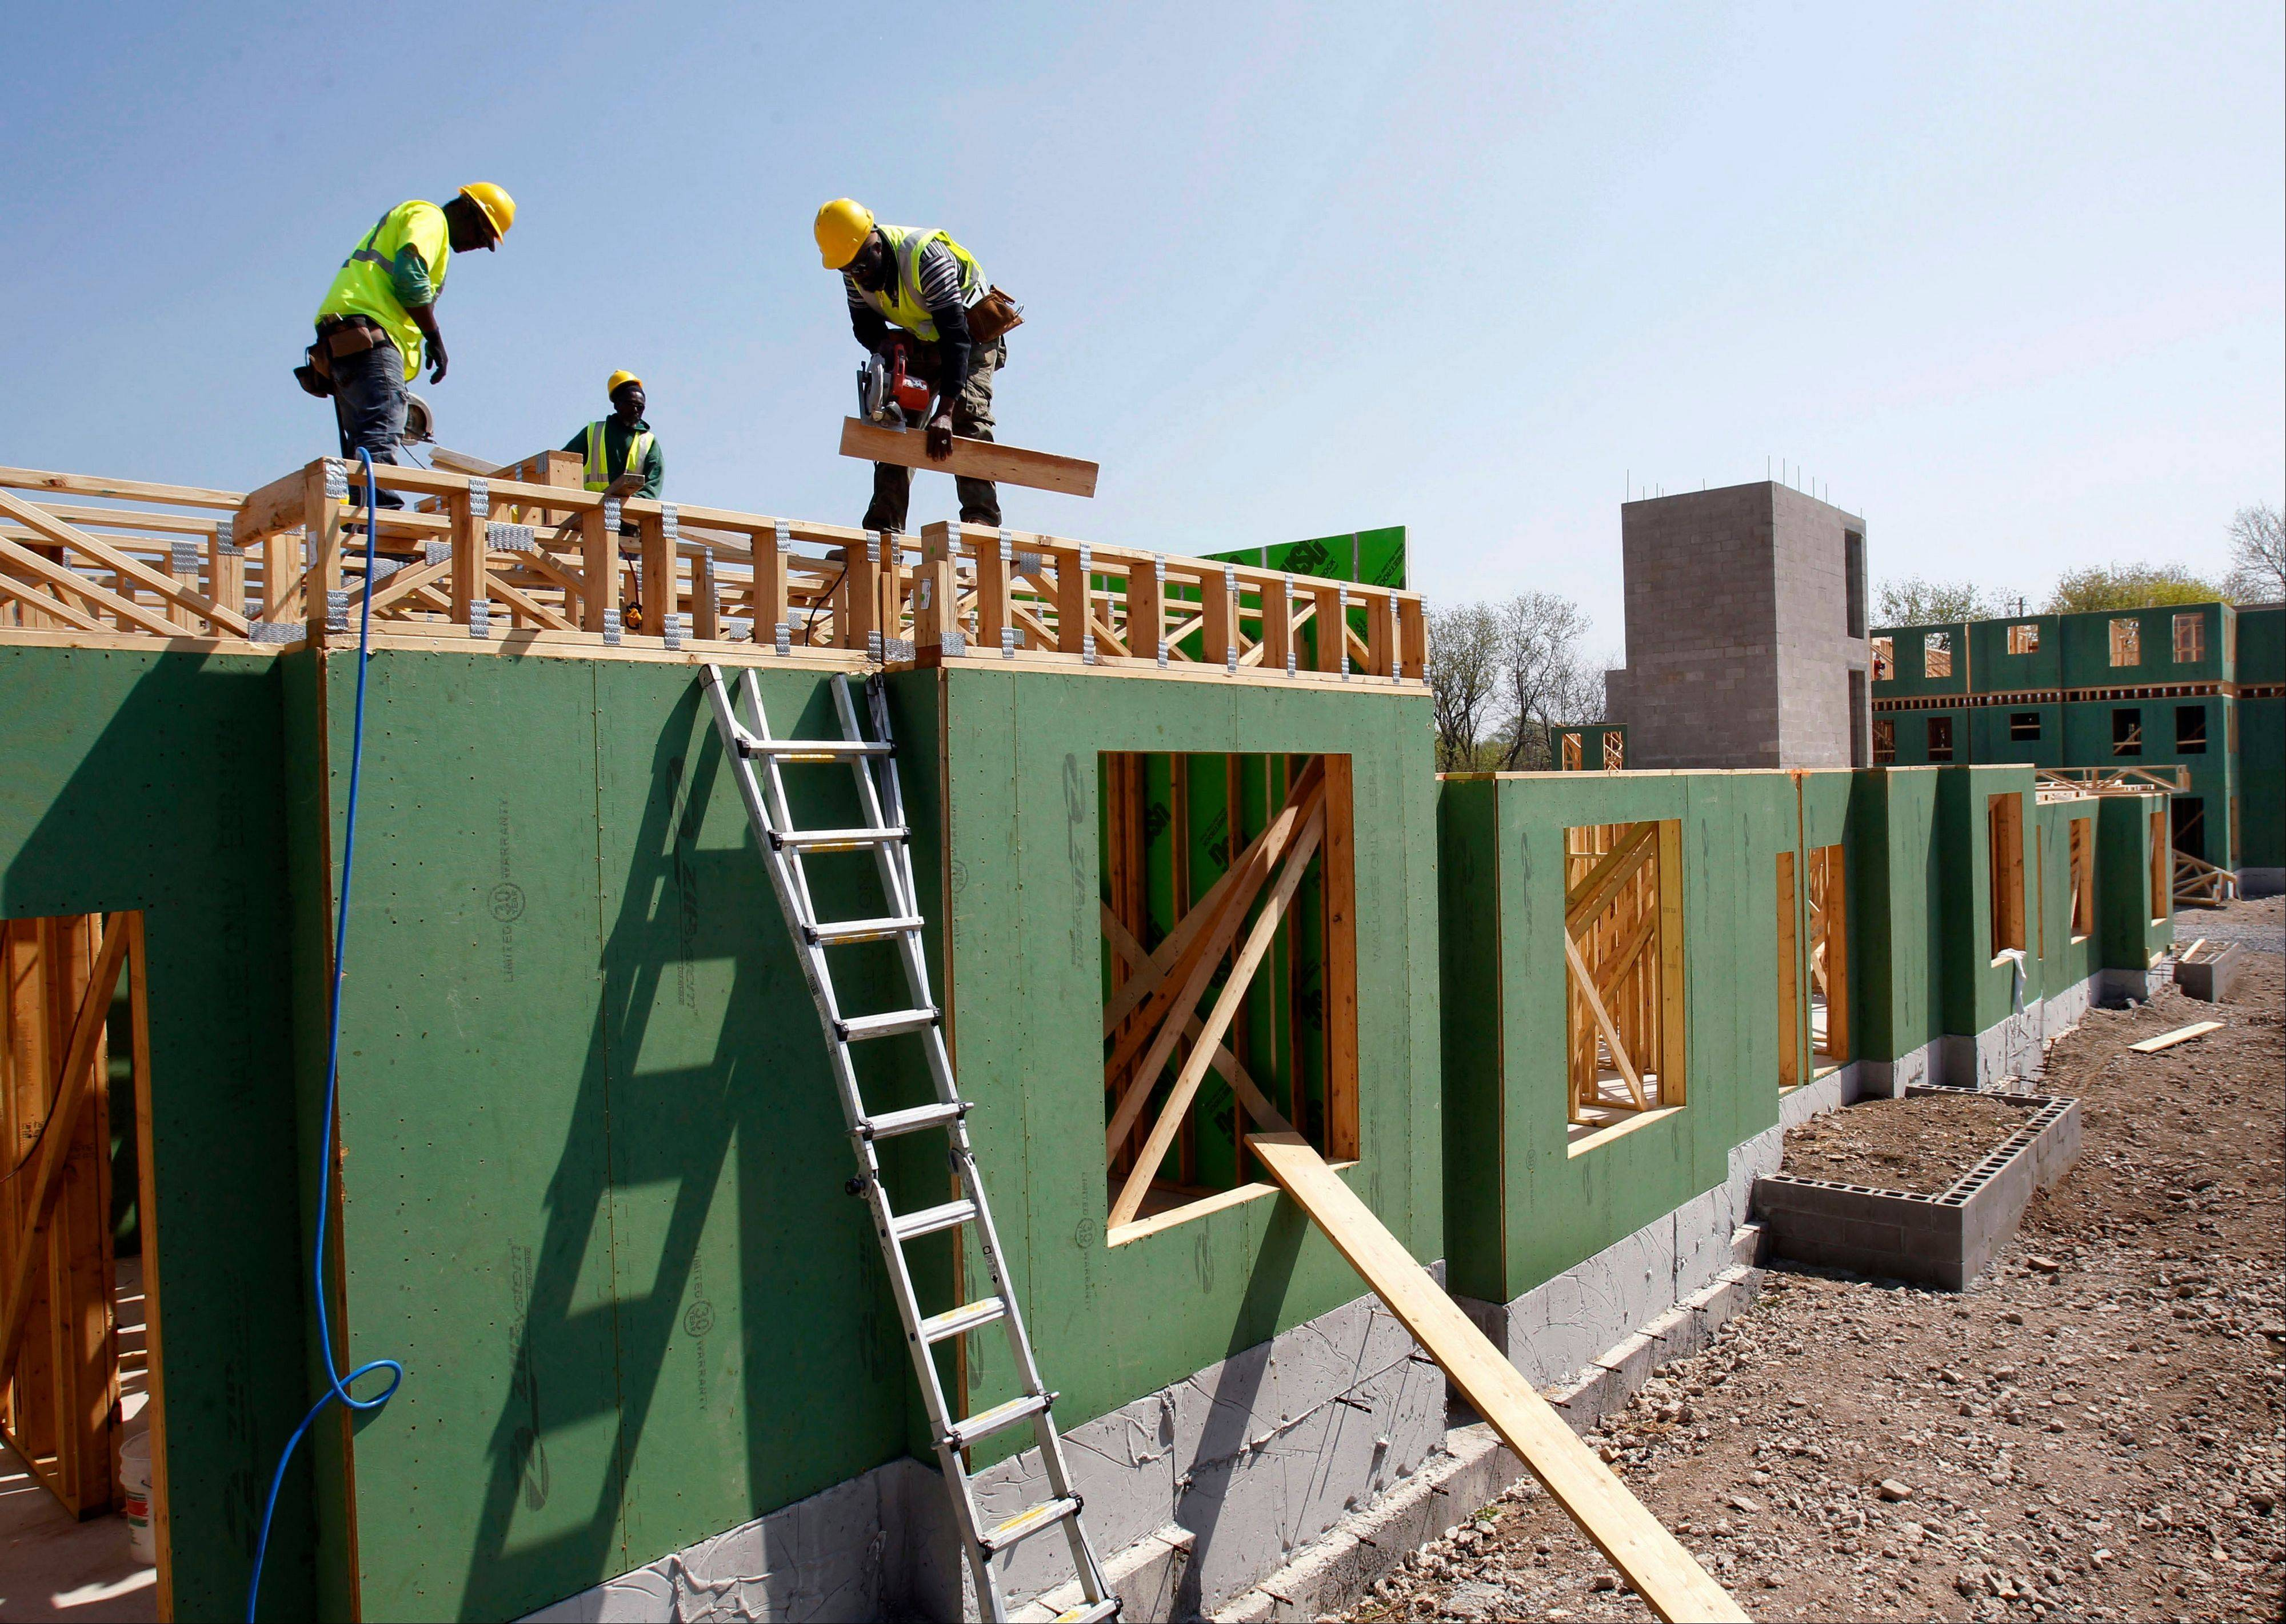 Workers at the construction of a new apartment housing complex in Trenton, N.J.